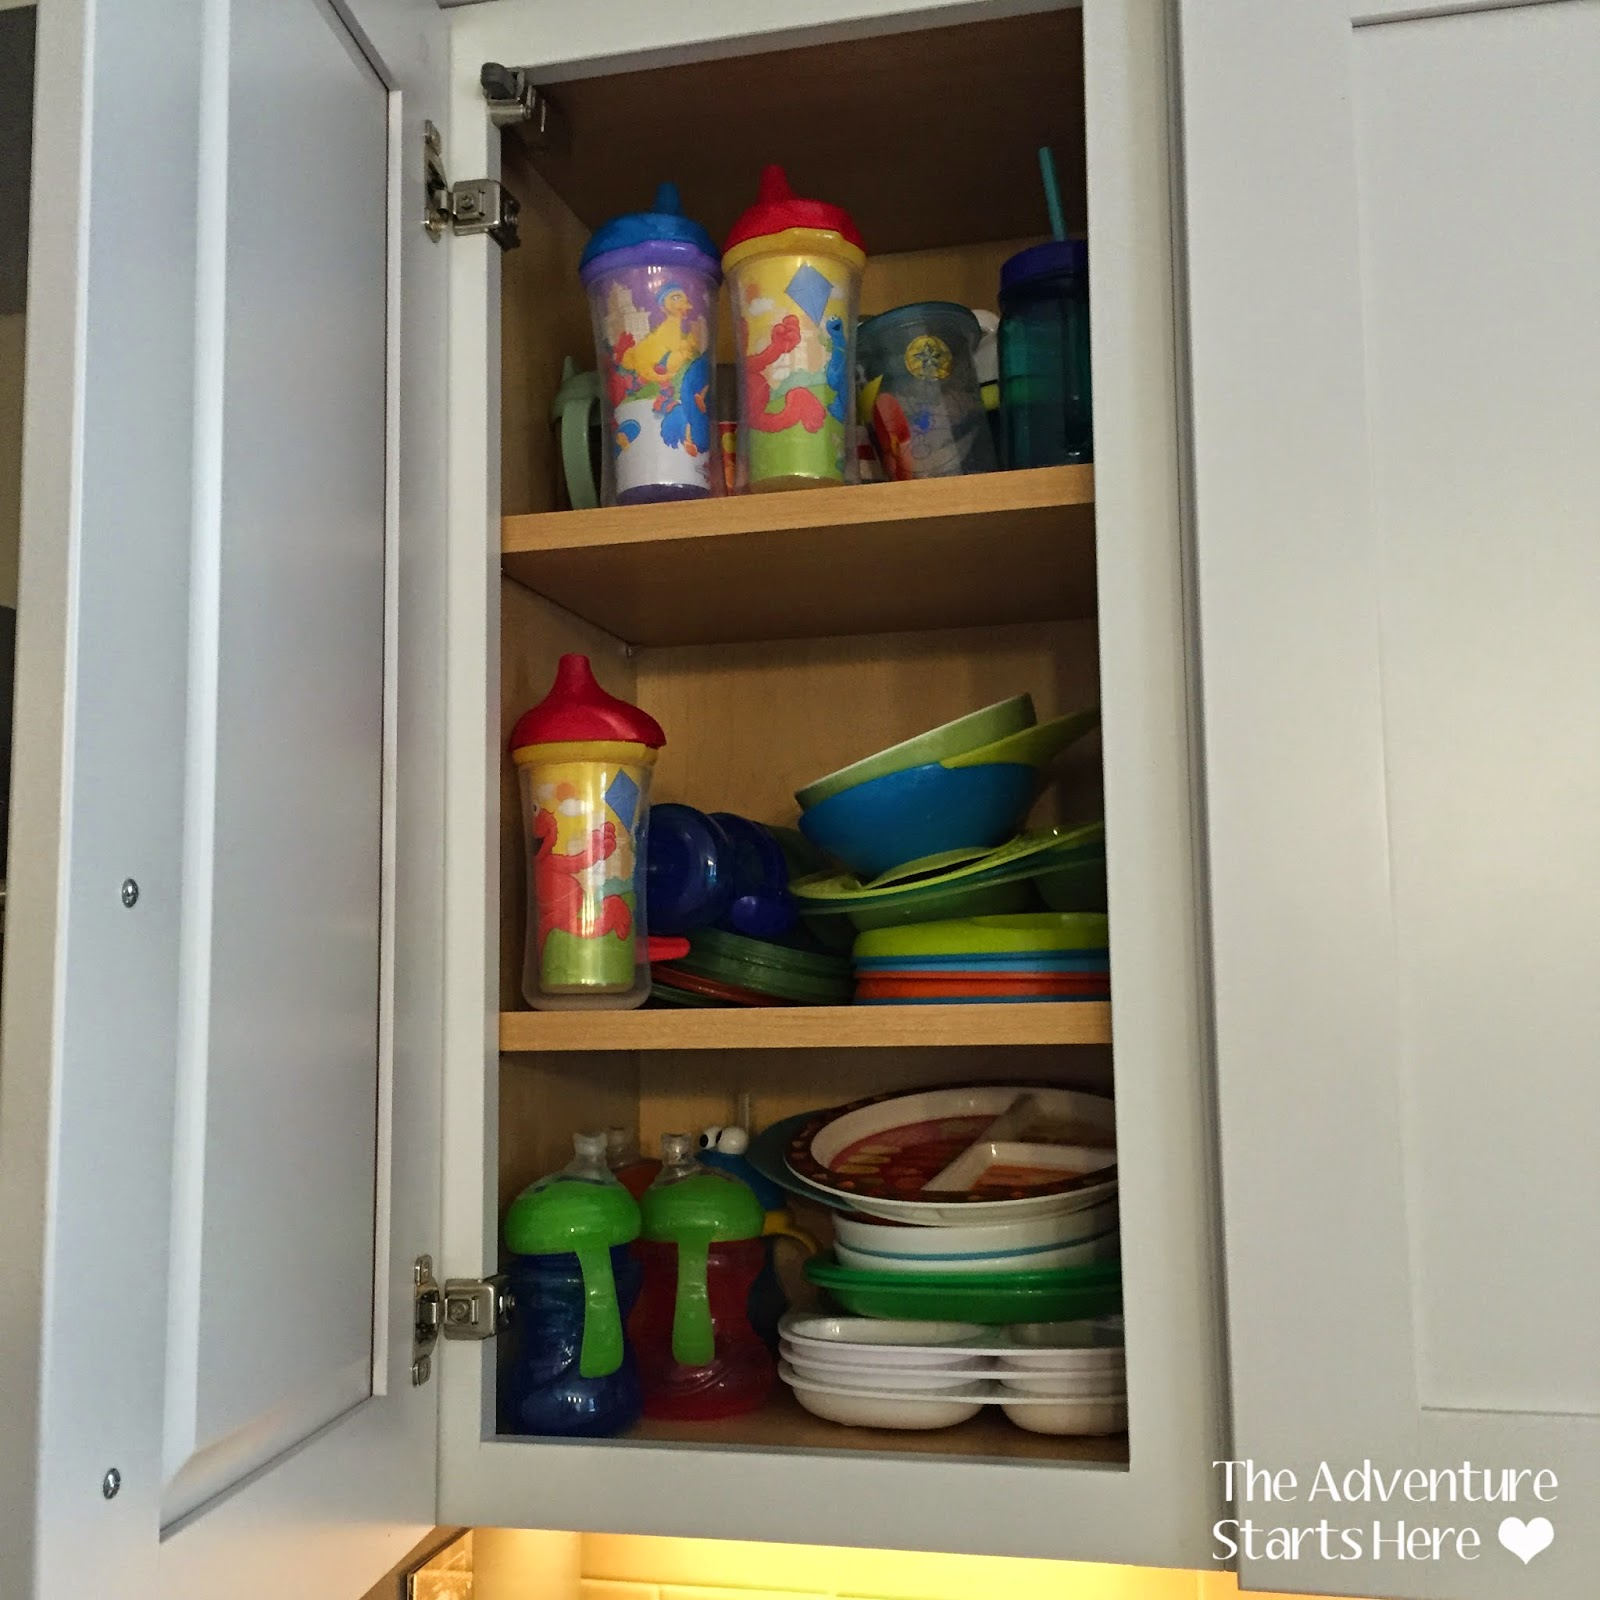 Messy Cups Plates: The Adventure Starts Here: An Organized Kitchen